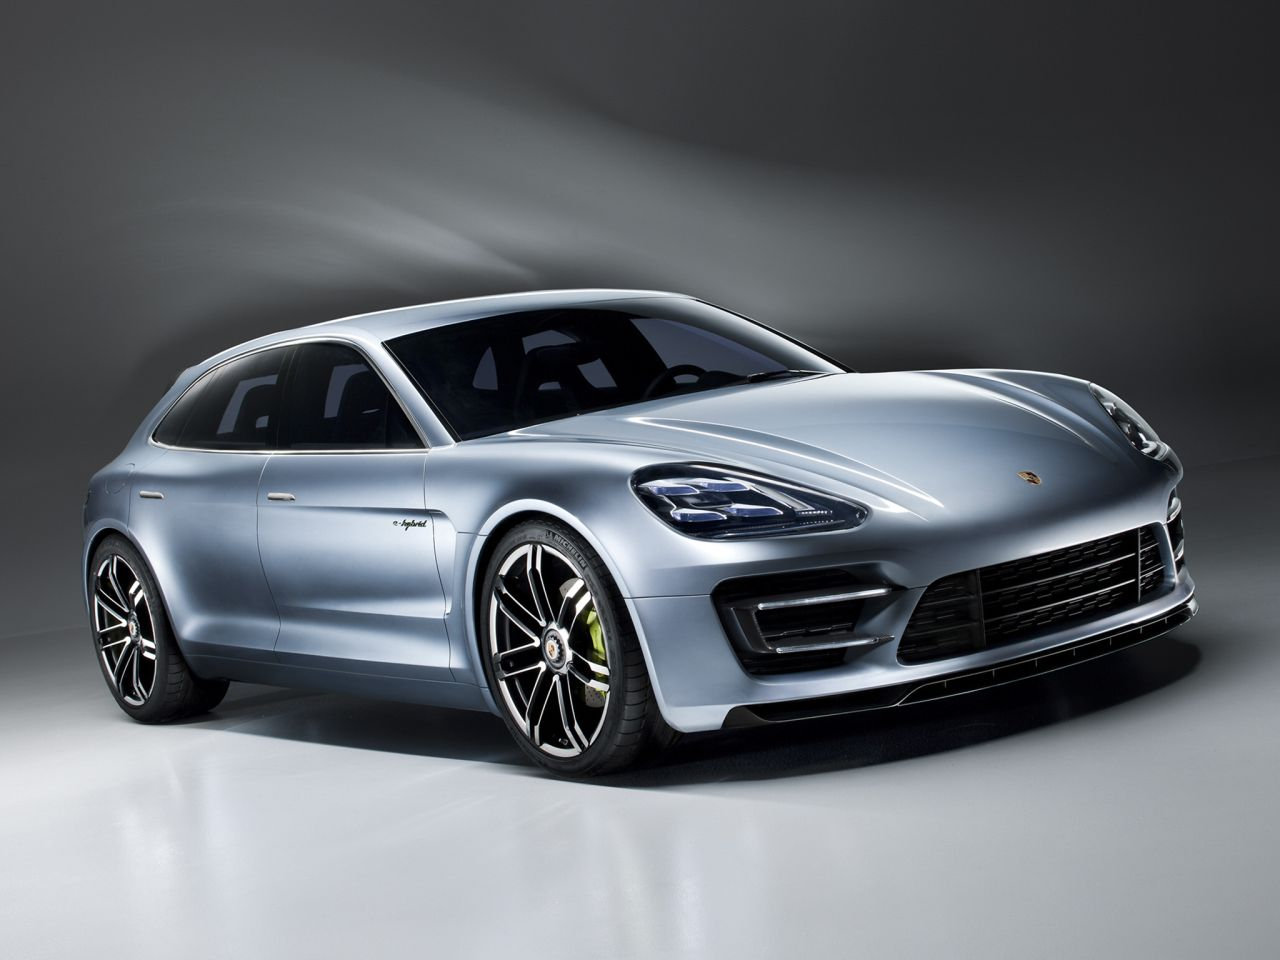 The Hip Subscription Porsche Panamera Sport Turismo